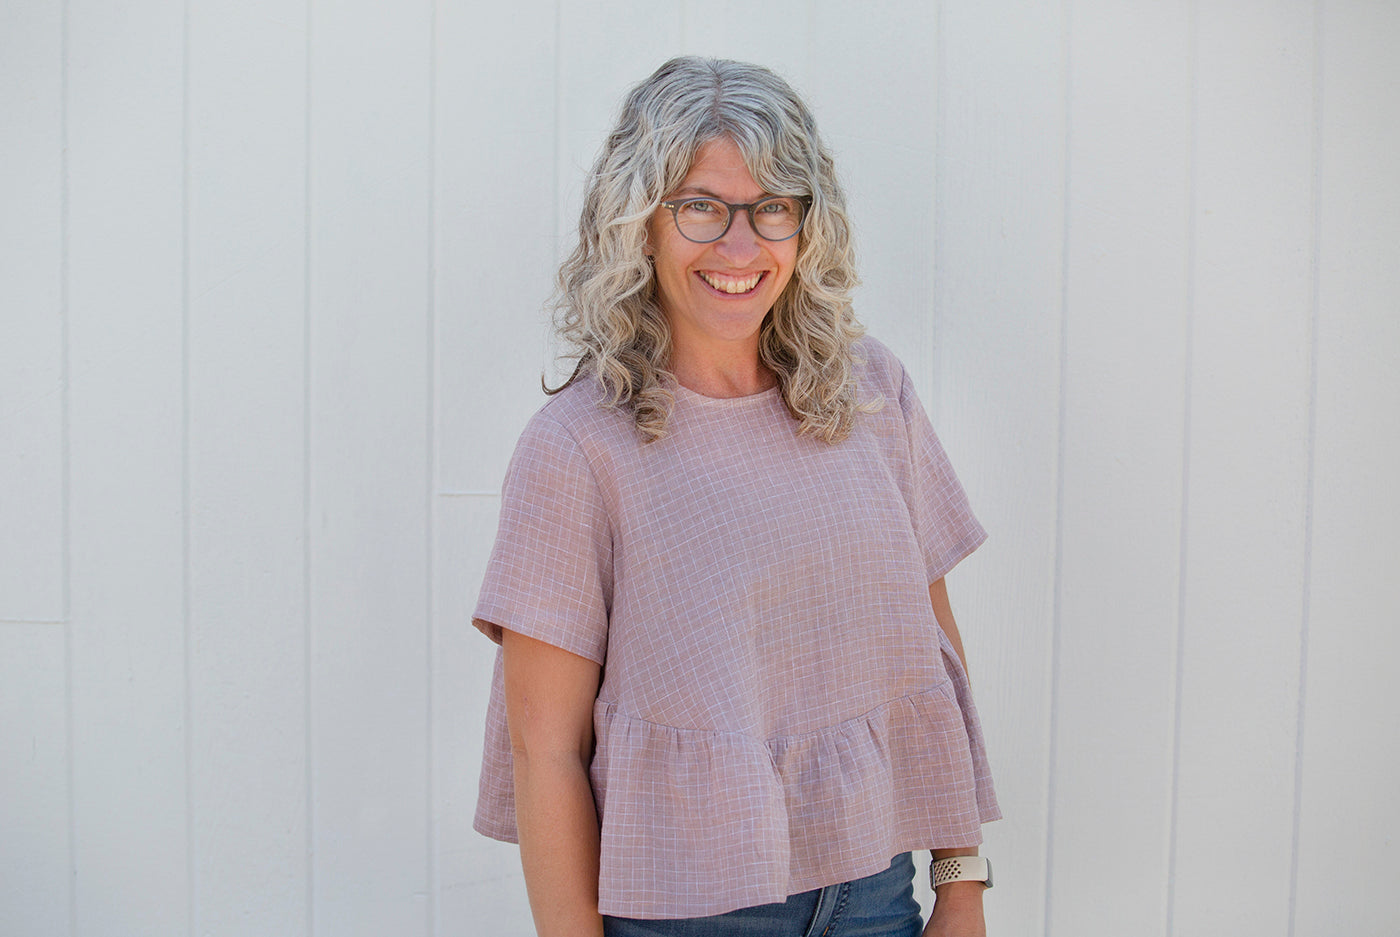 This is a photo of a woman wearing a pink ruffled shirt standing against a white wall.